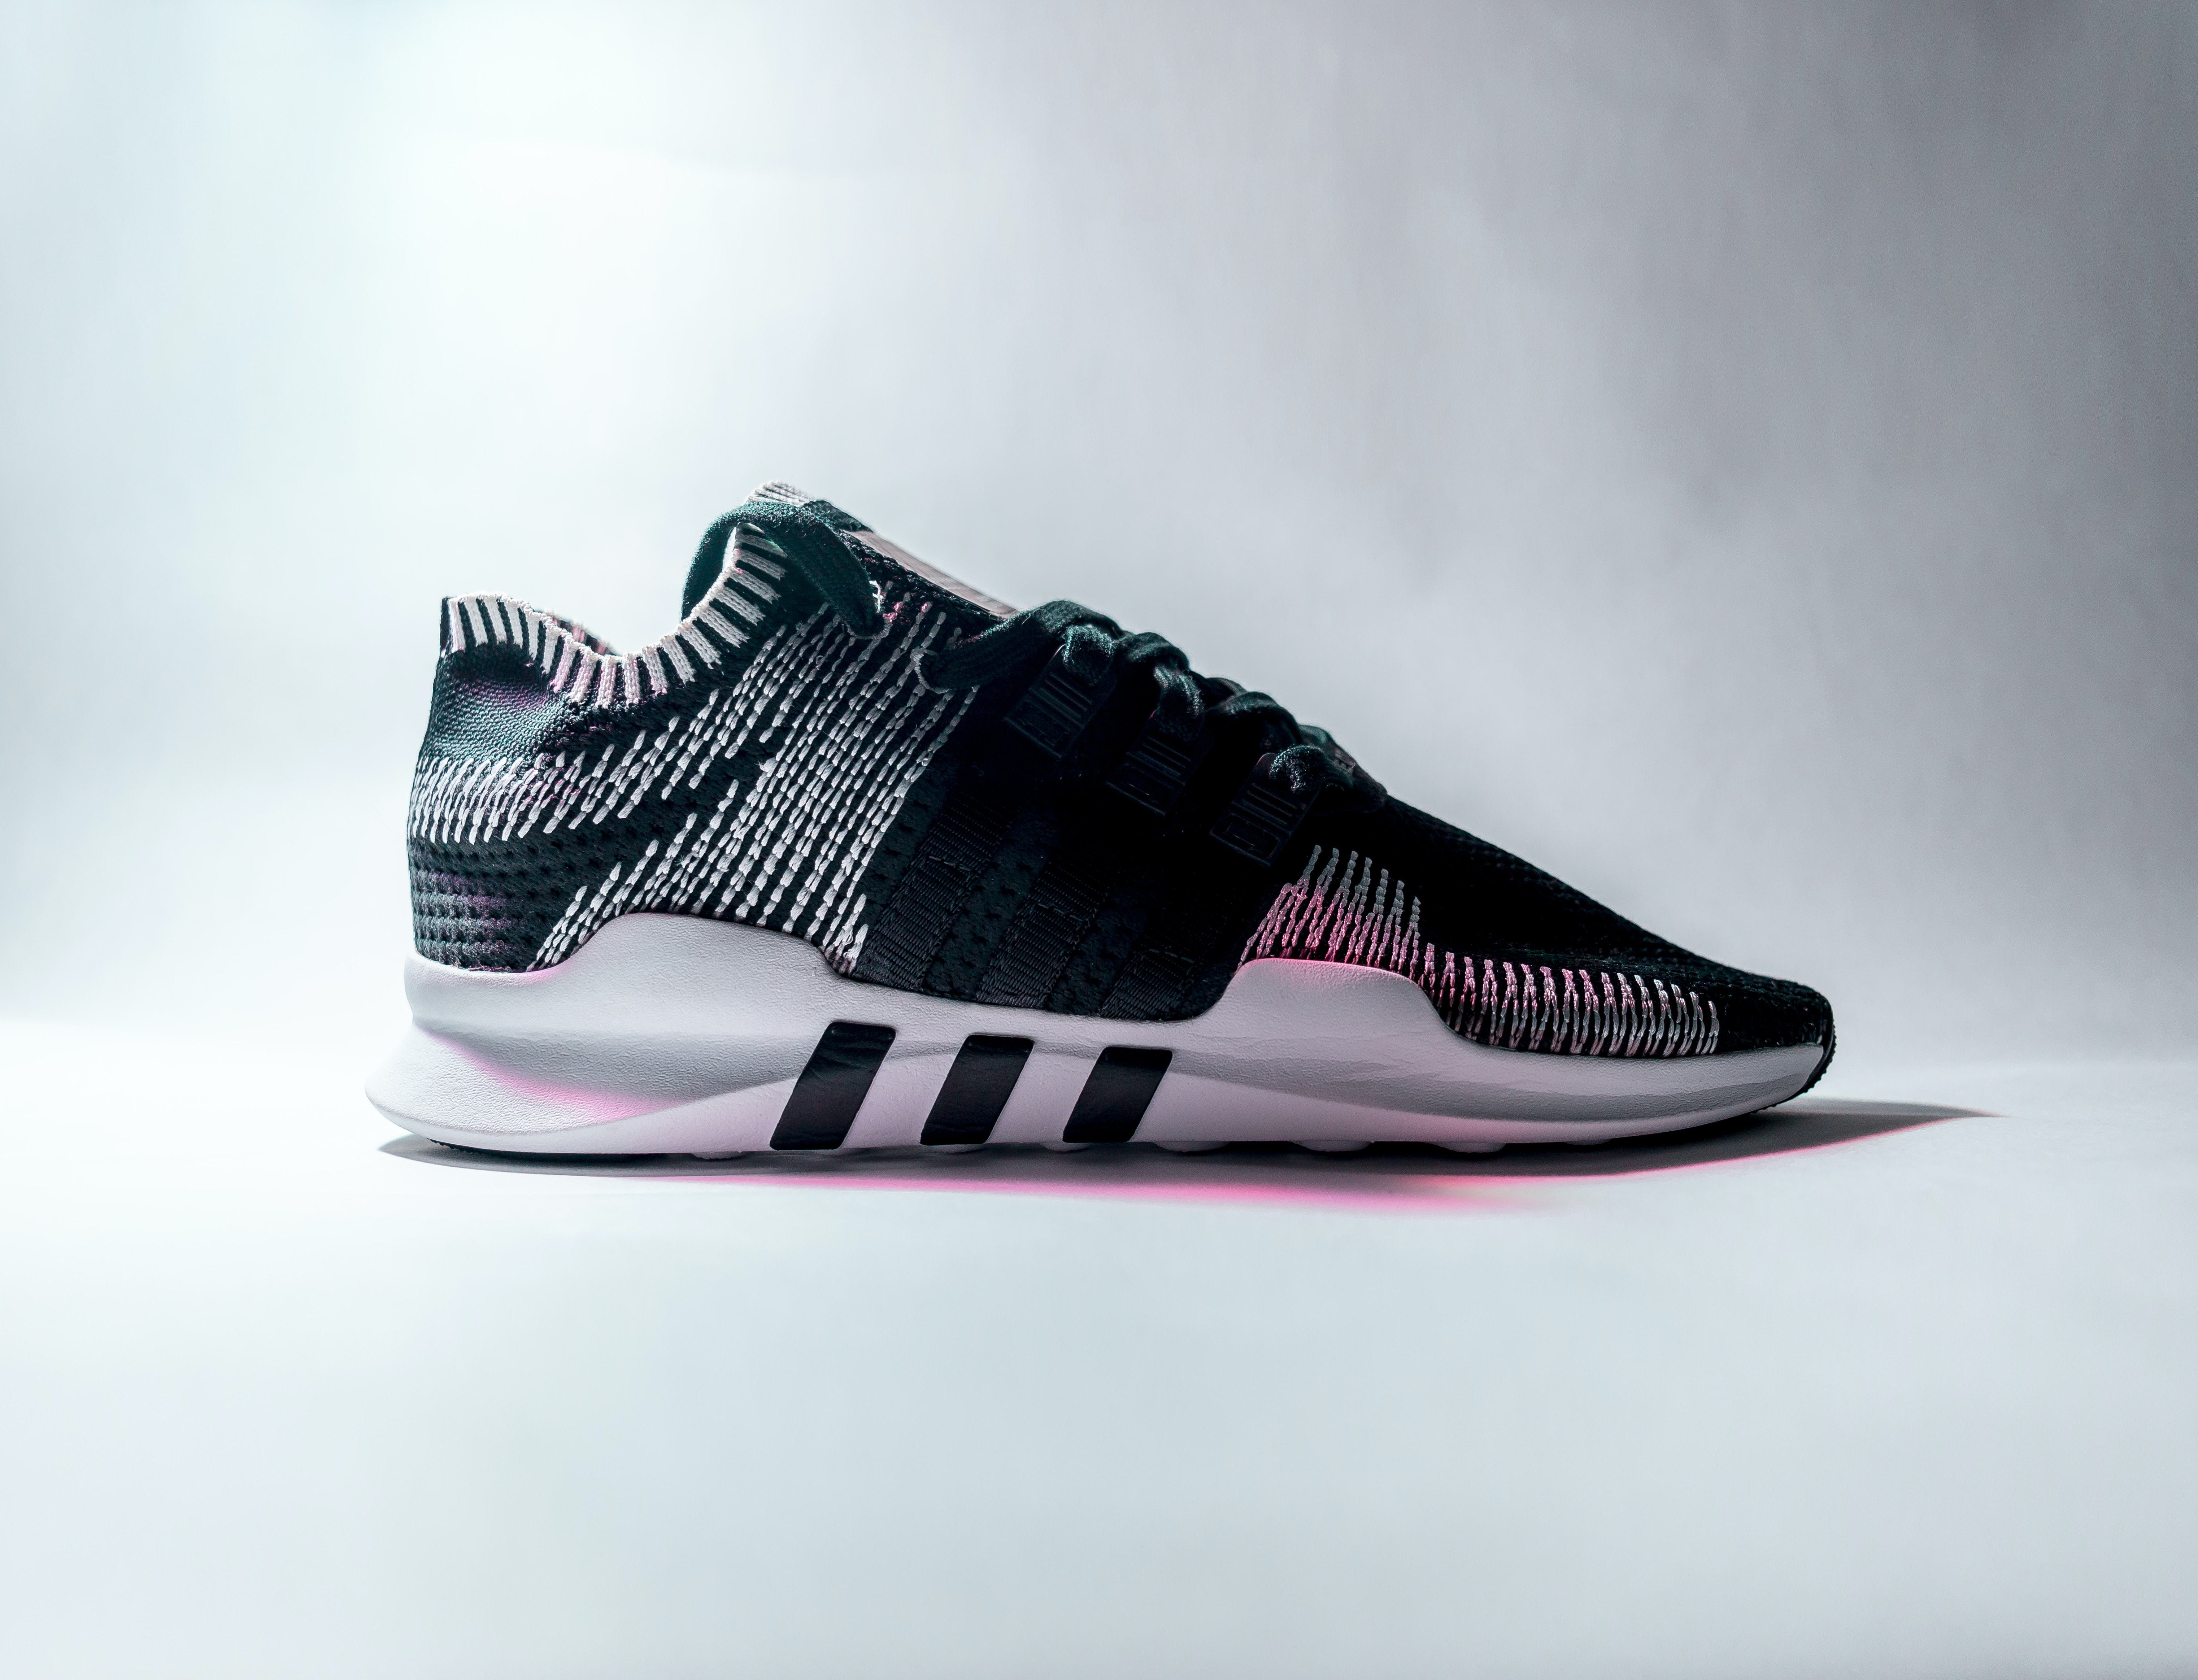 unpaired black and white Adidas low-top sneaker